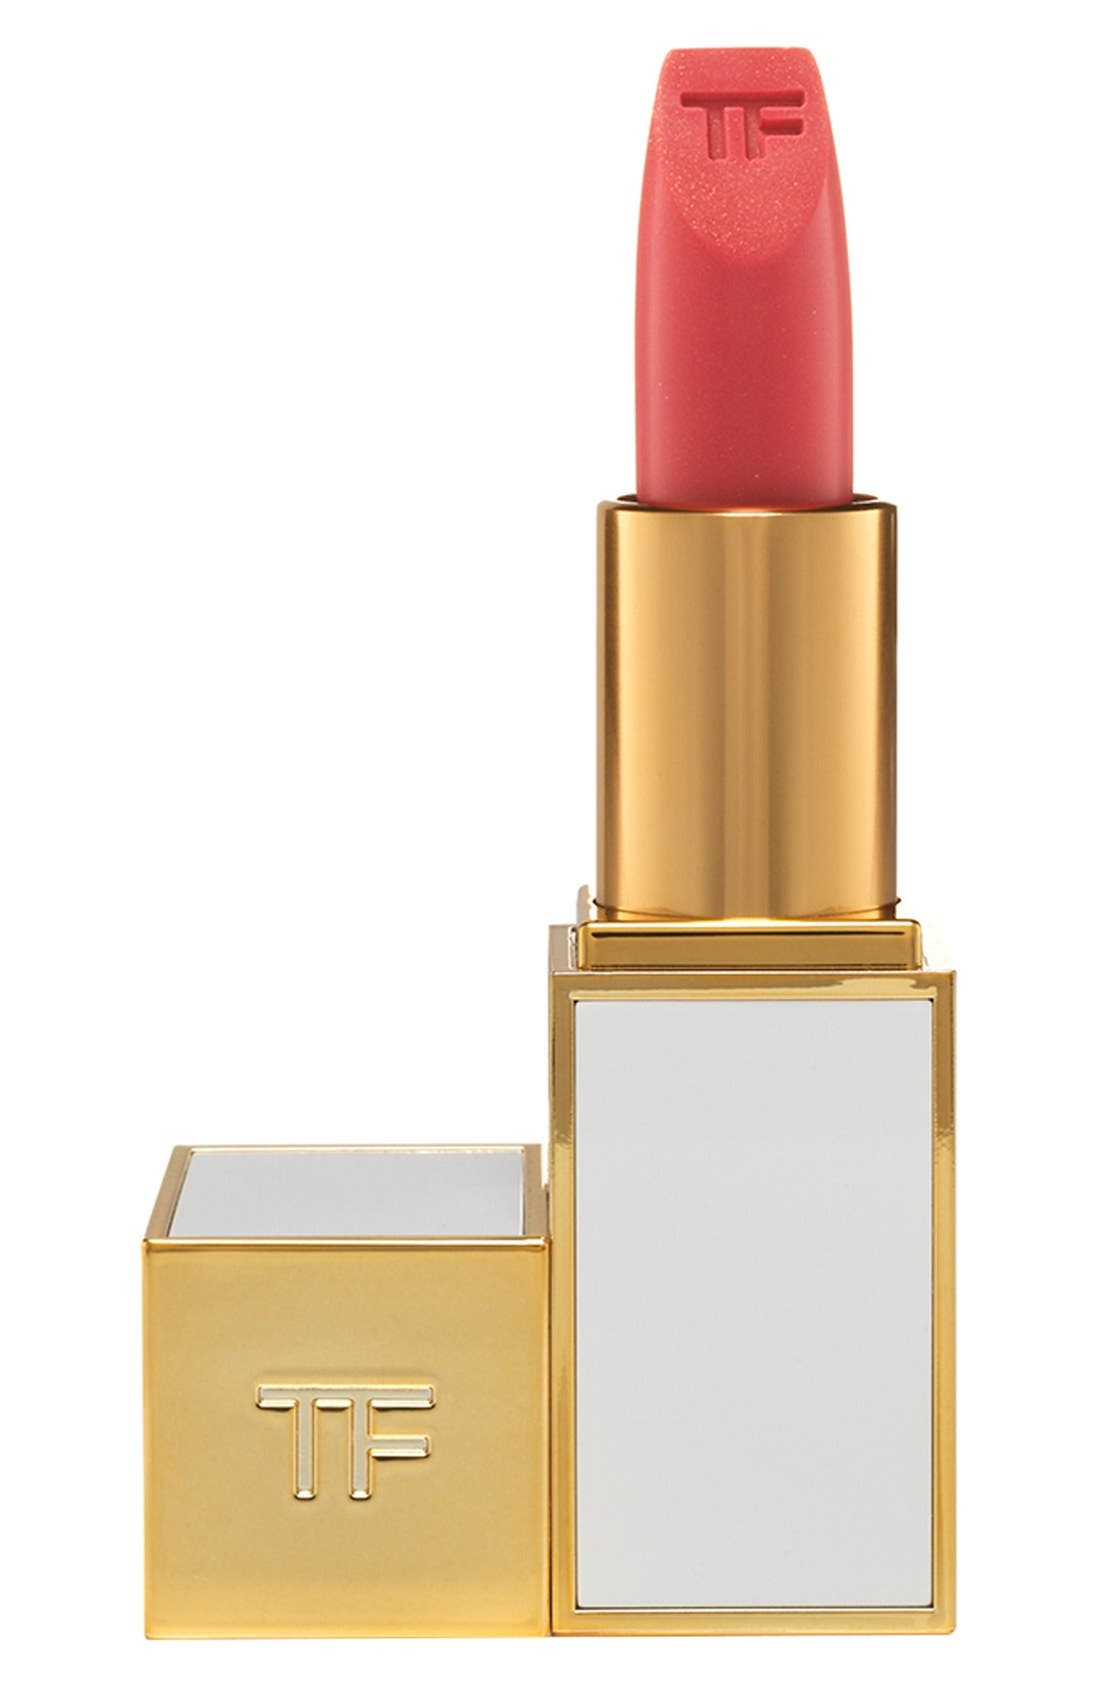 Tom Ford Sheer Lip Color